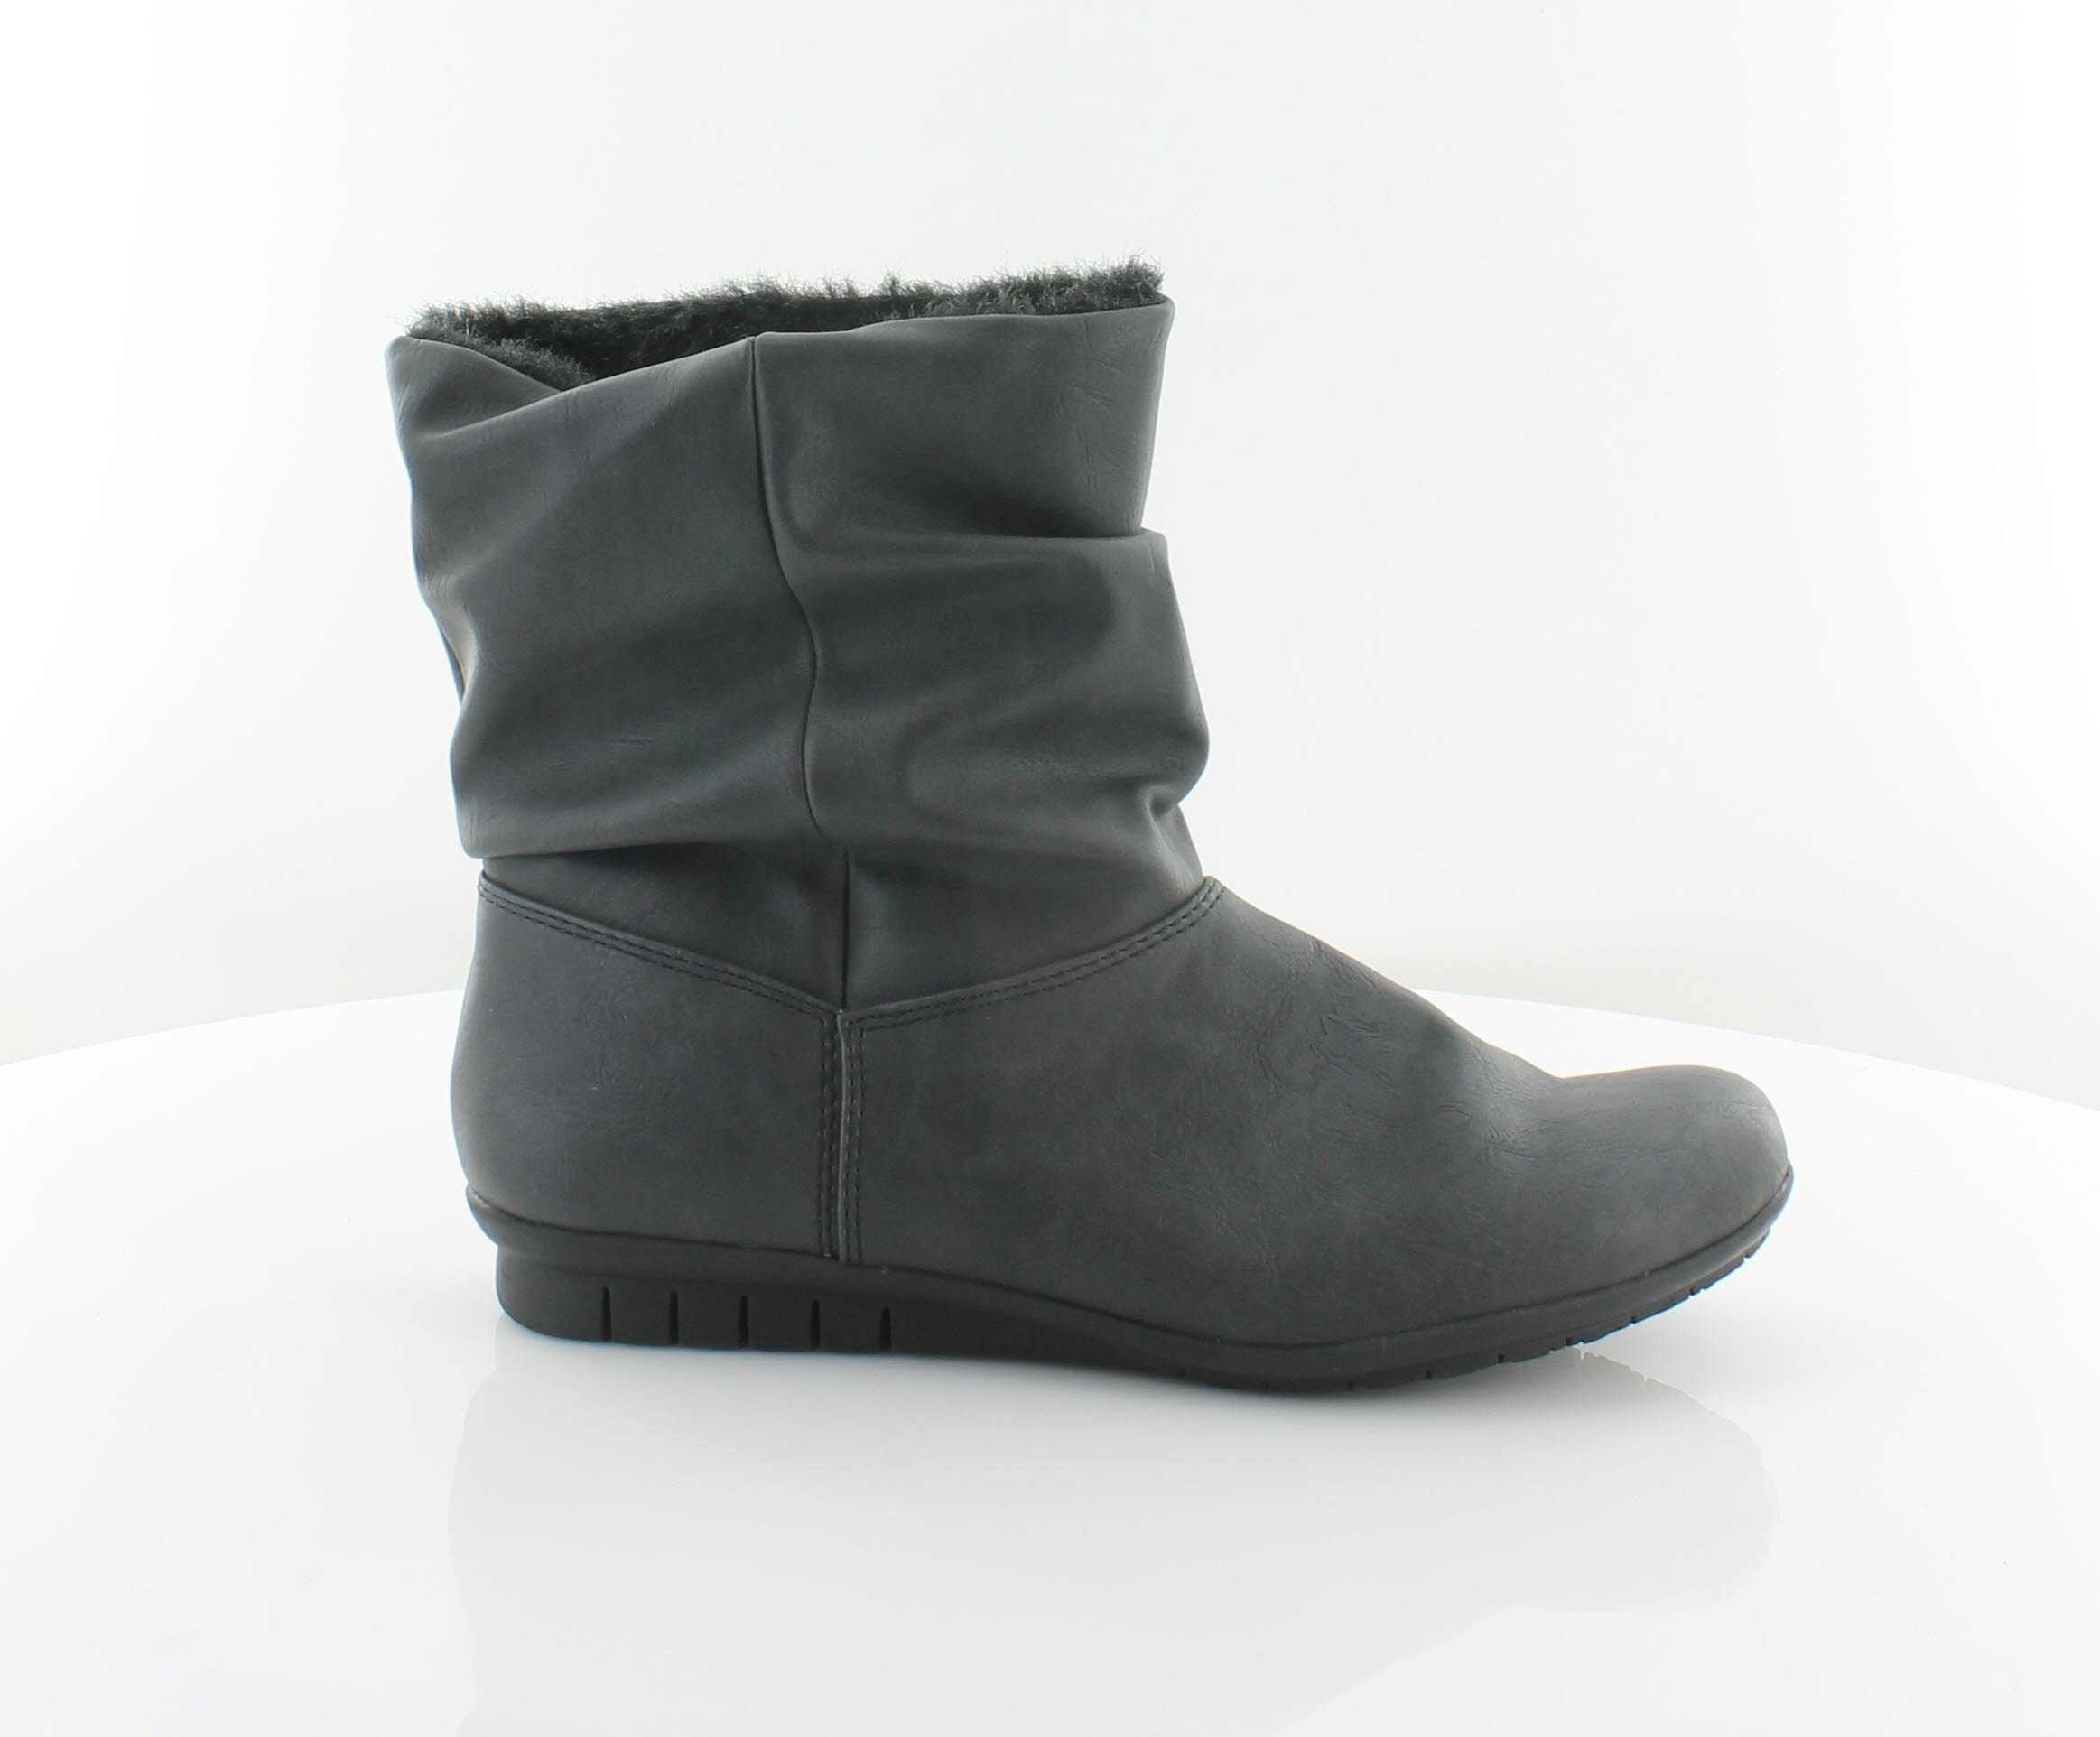 Cliffs-by-White-Mountain-Fox-Black-Womens-Shoes-Size-7-5-M-Boots-MSRP-79-99